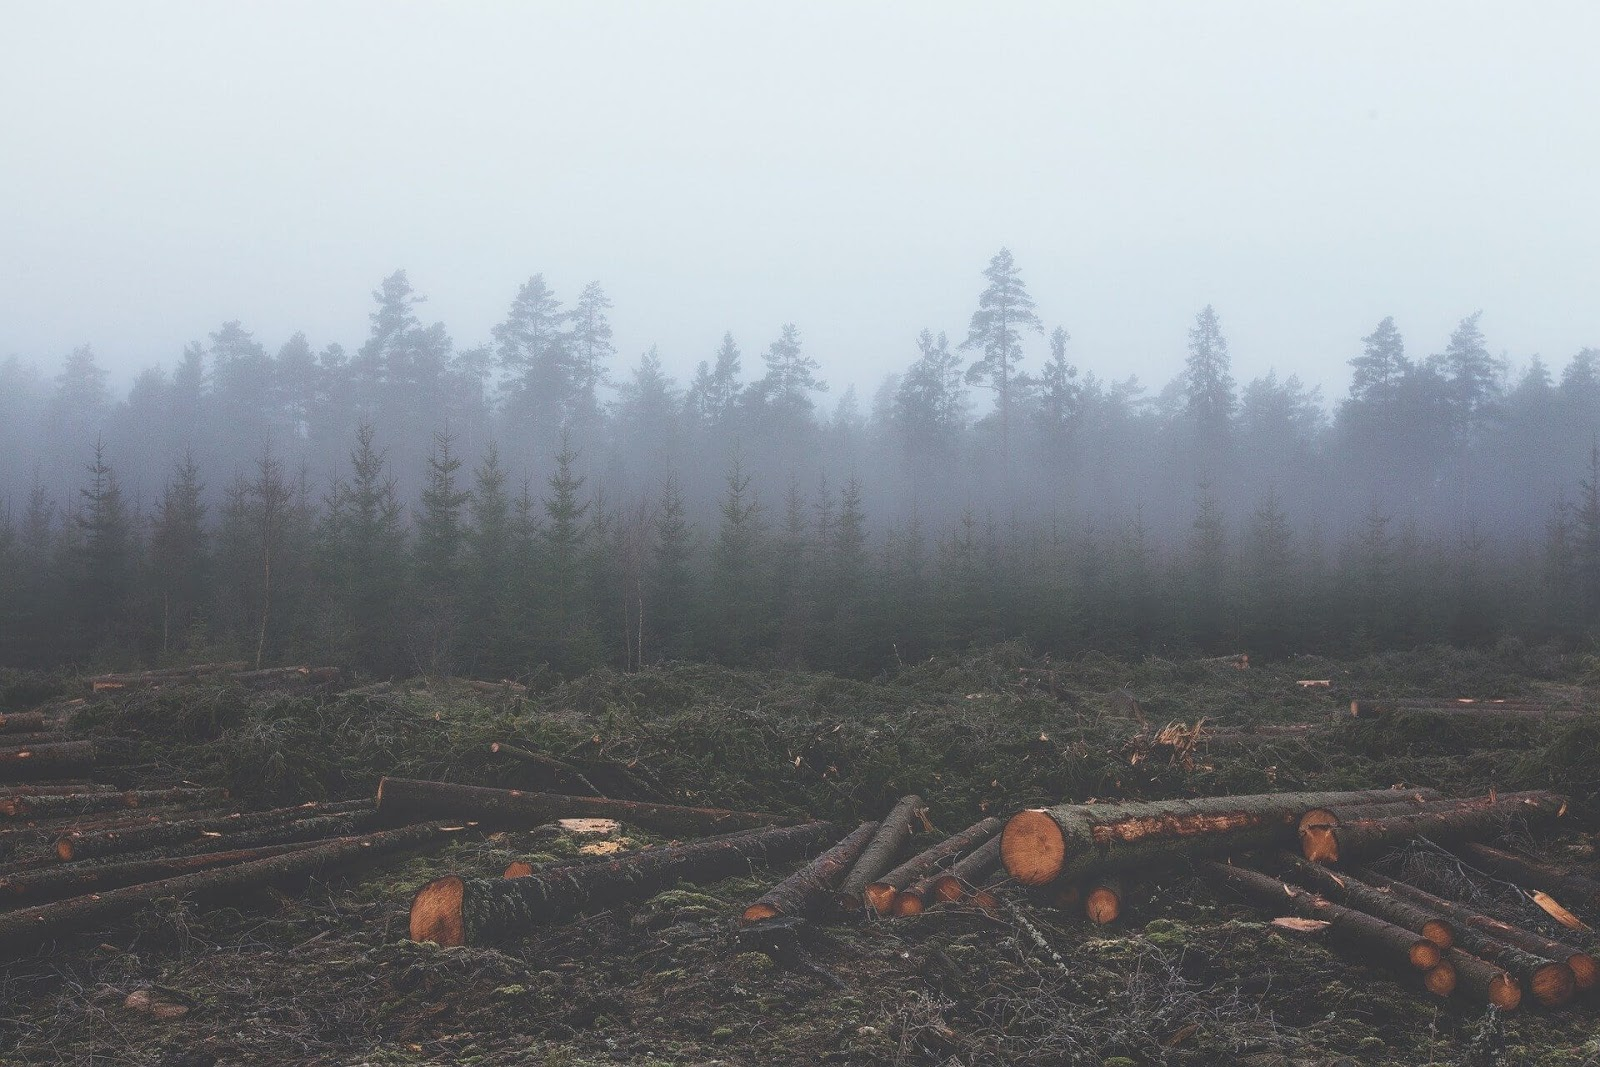 Felled logs in front of a forest